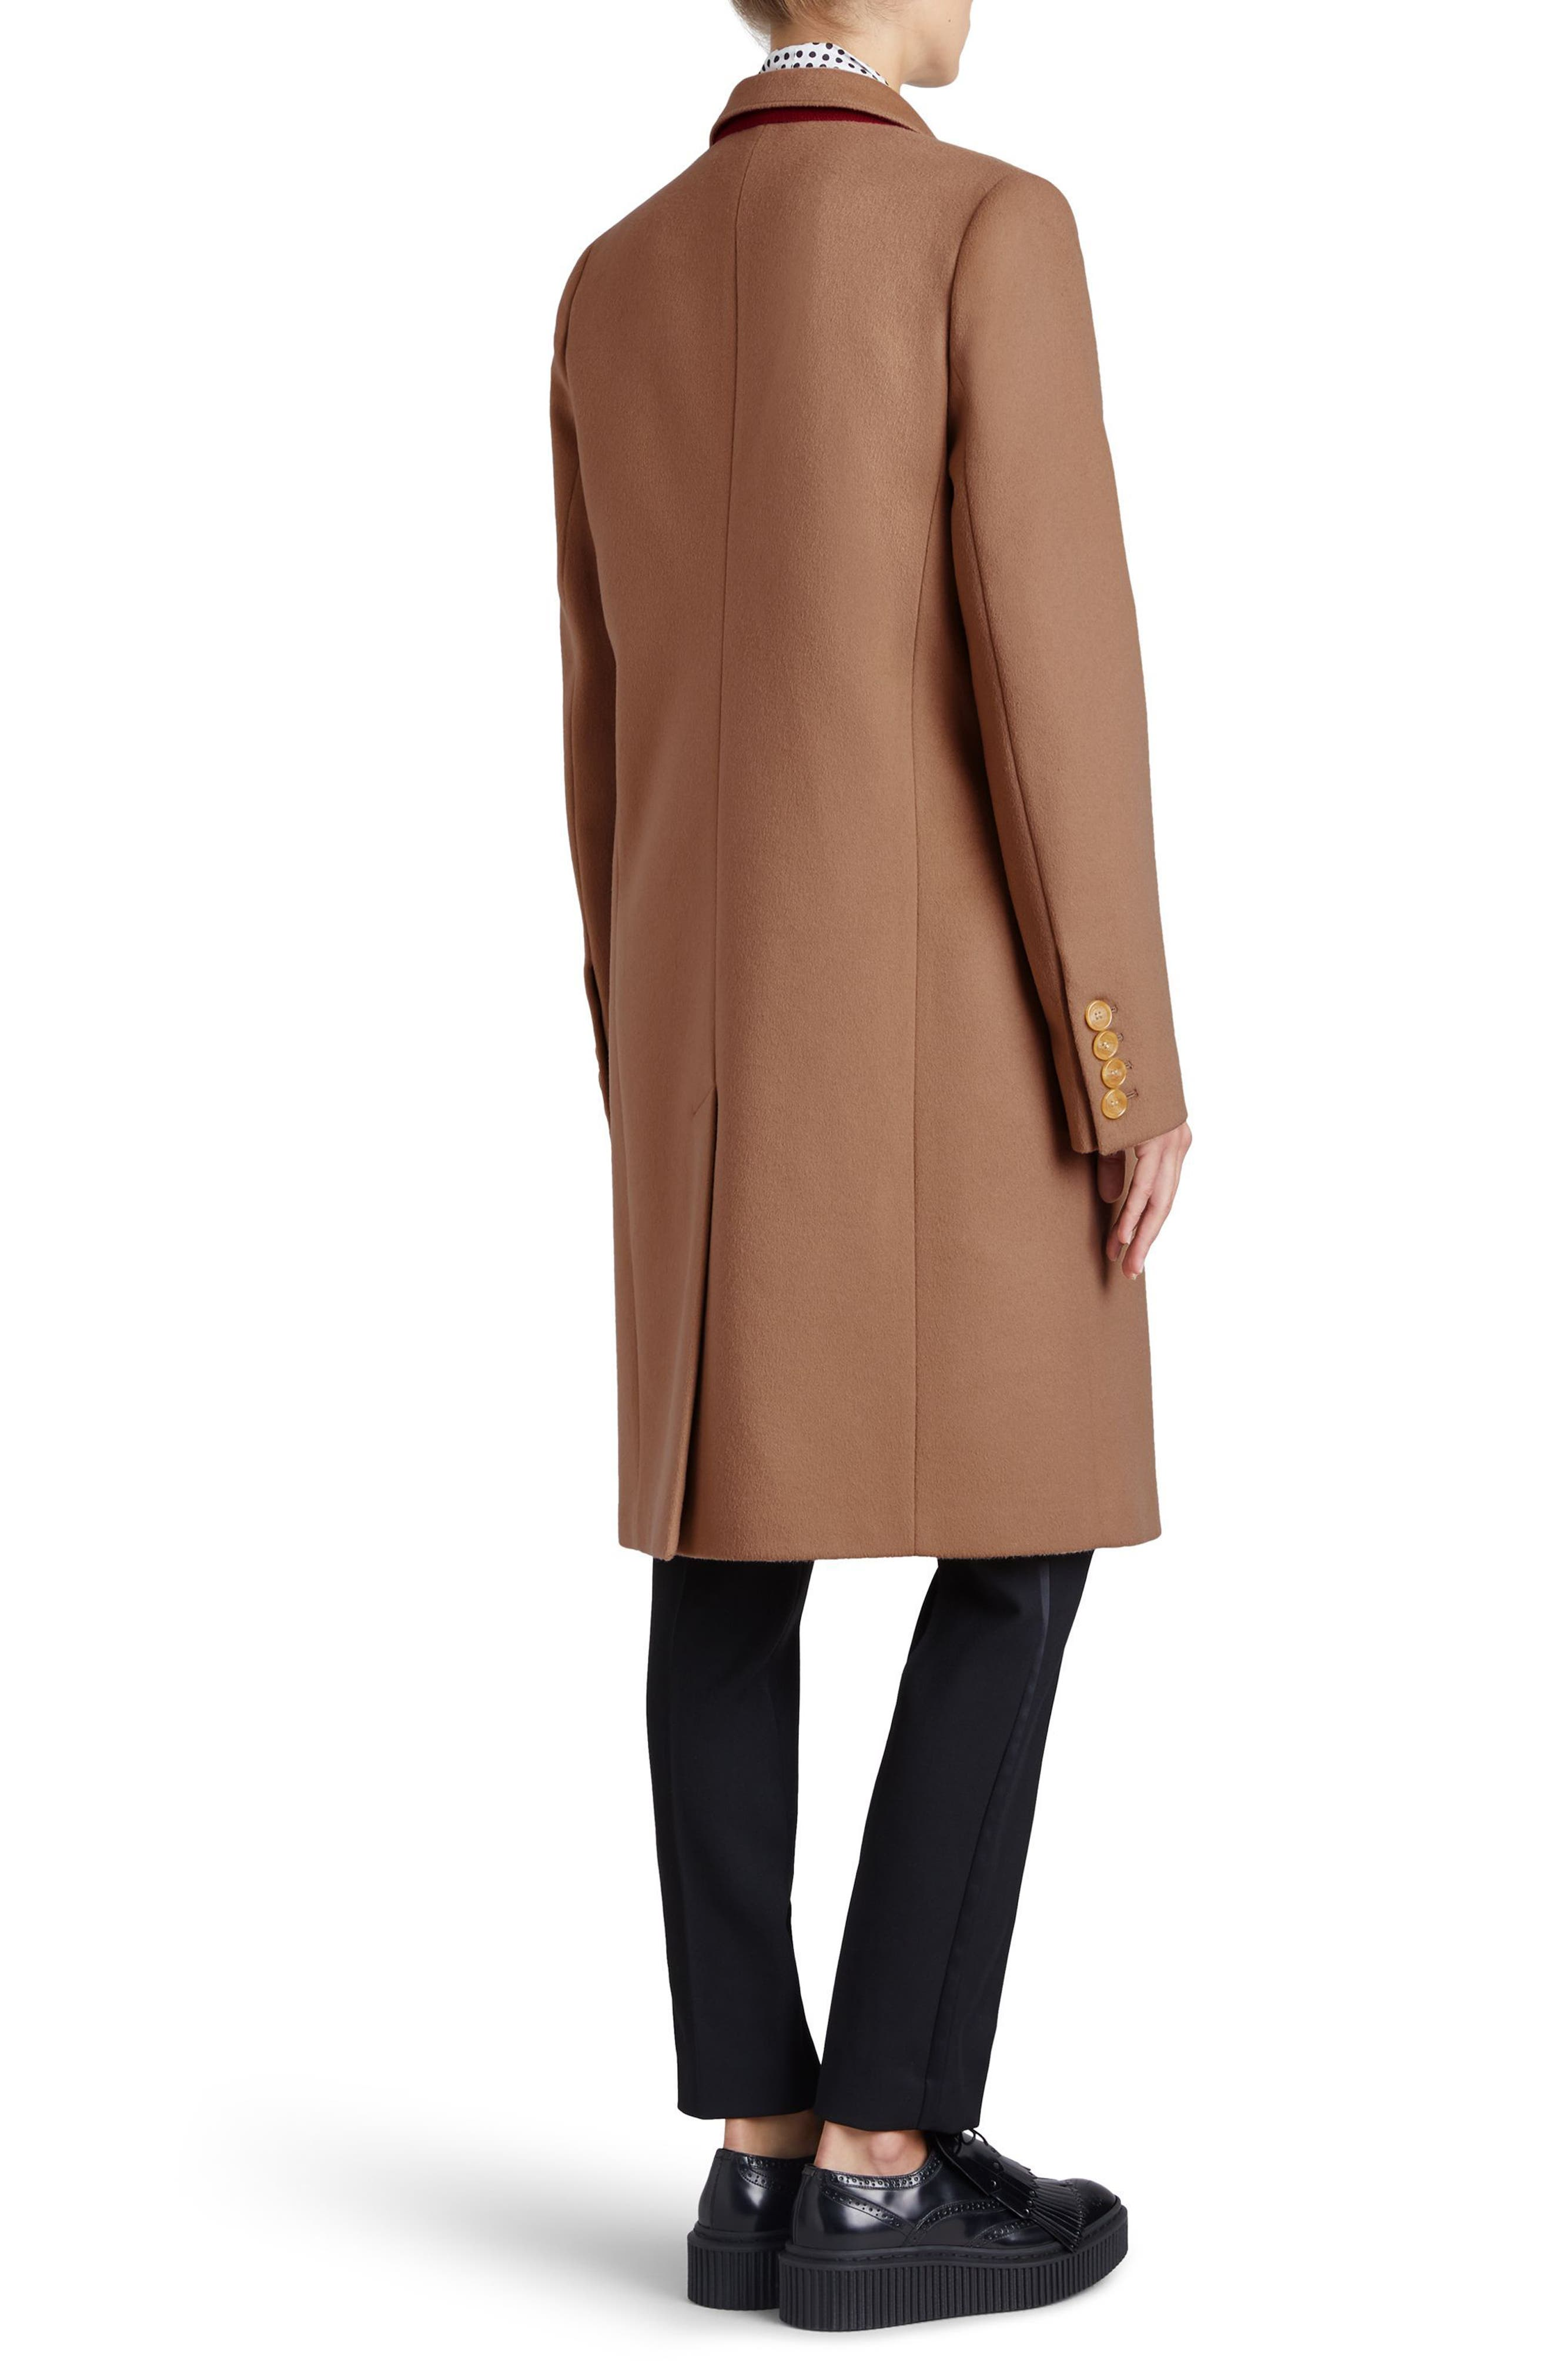 Fellhurst Wool & Cashmere Coat,                             Alternate thumbnail 3, color,                             Camel